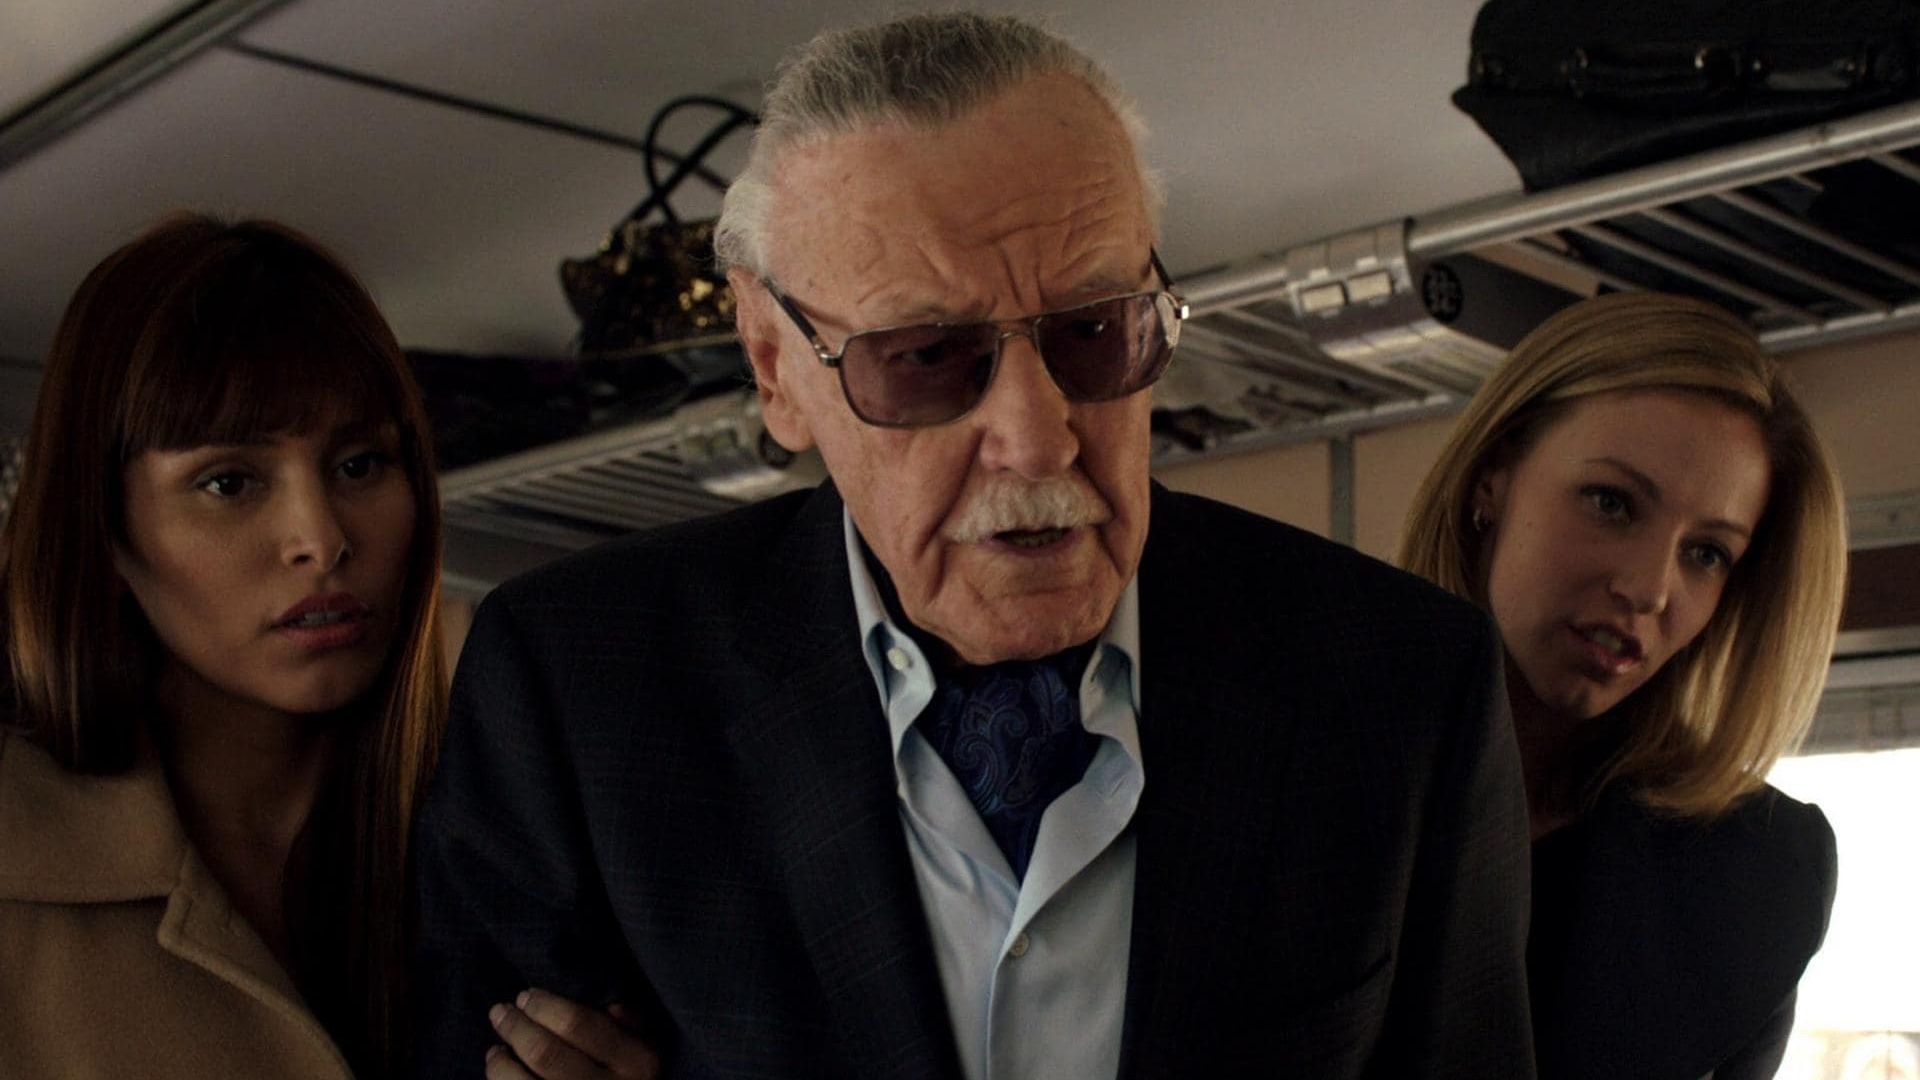 stan-lee-was-de-aged-45-year-for-his-cameo-in-avengers-endgame-and-details-on-the-process-revealed-social.jpg